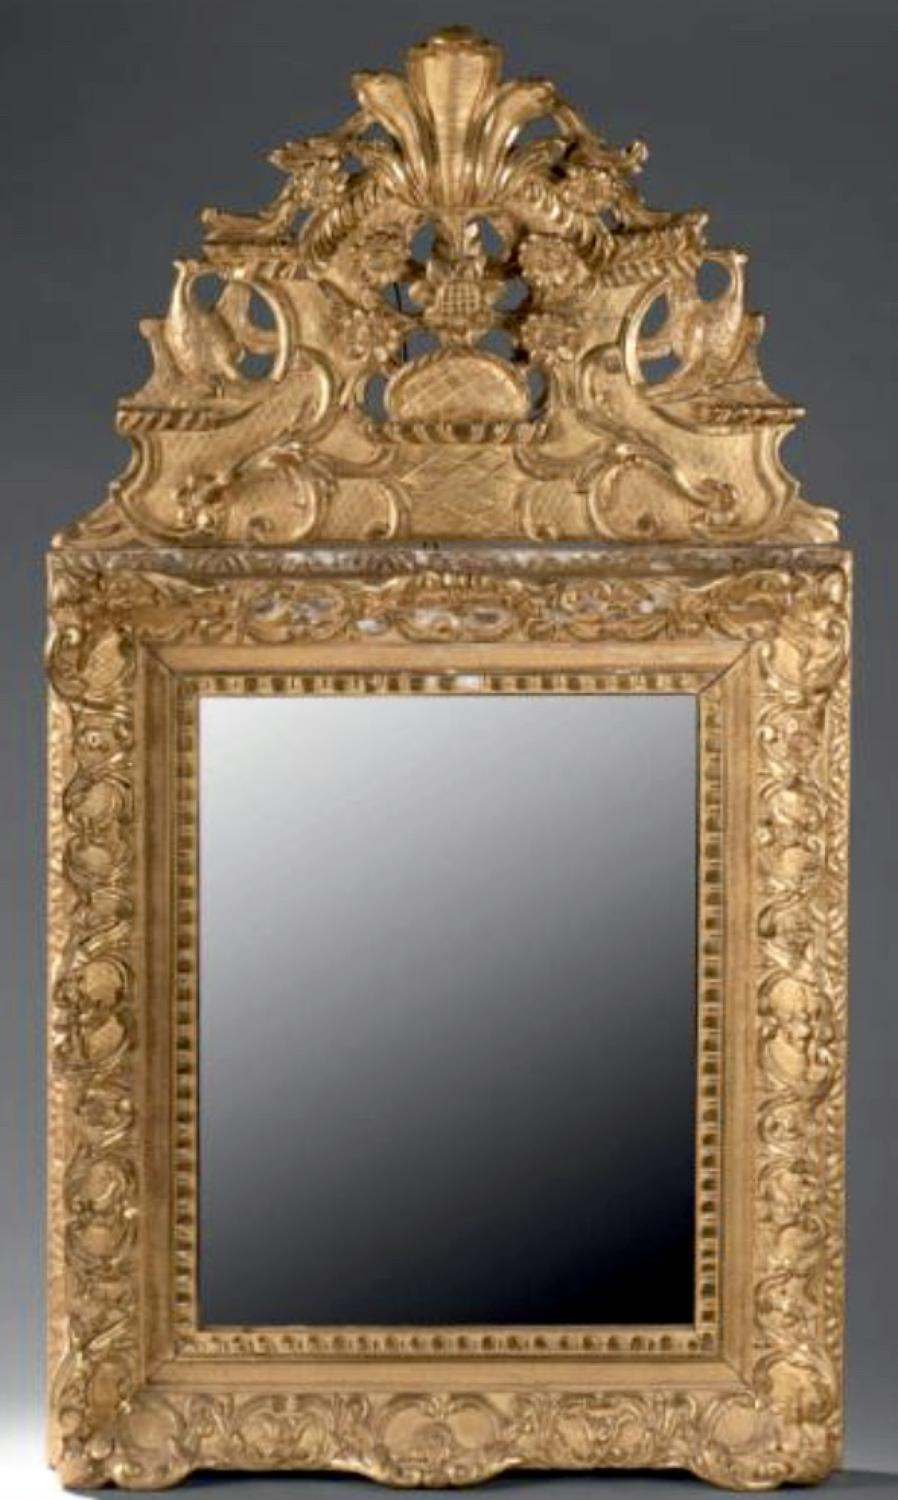 A LOUIS XIV PERIOD MIRROR